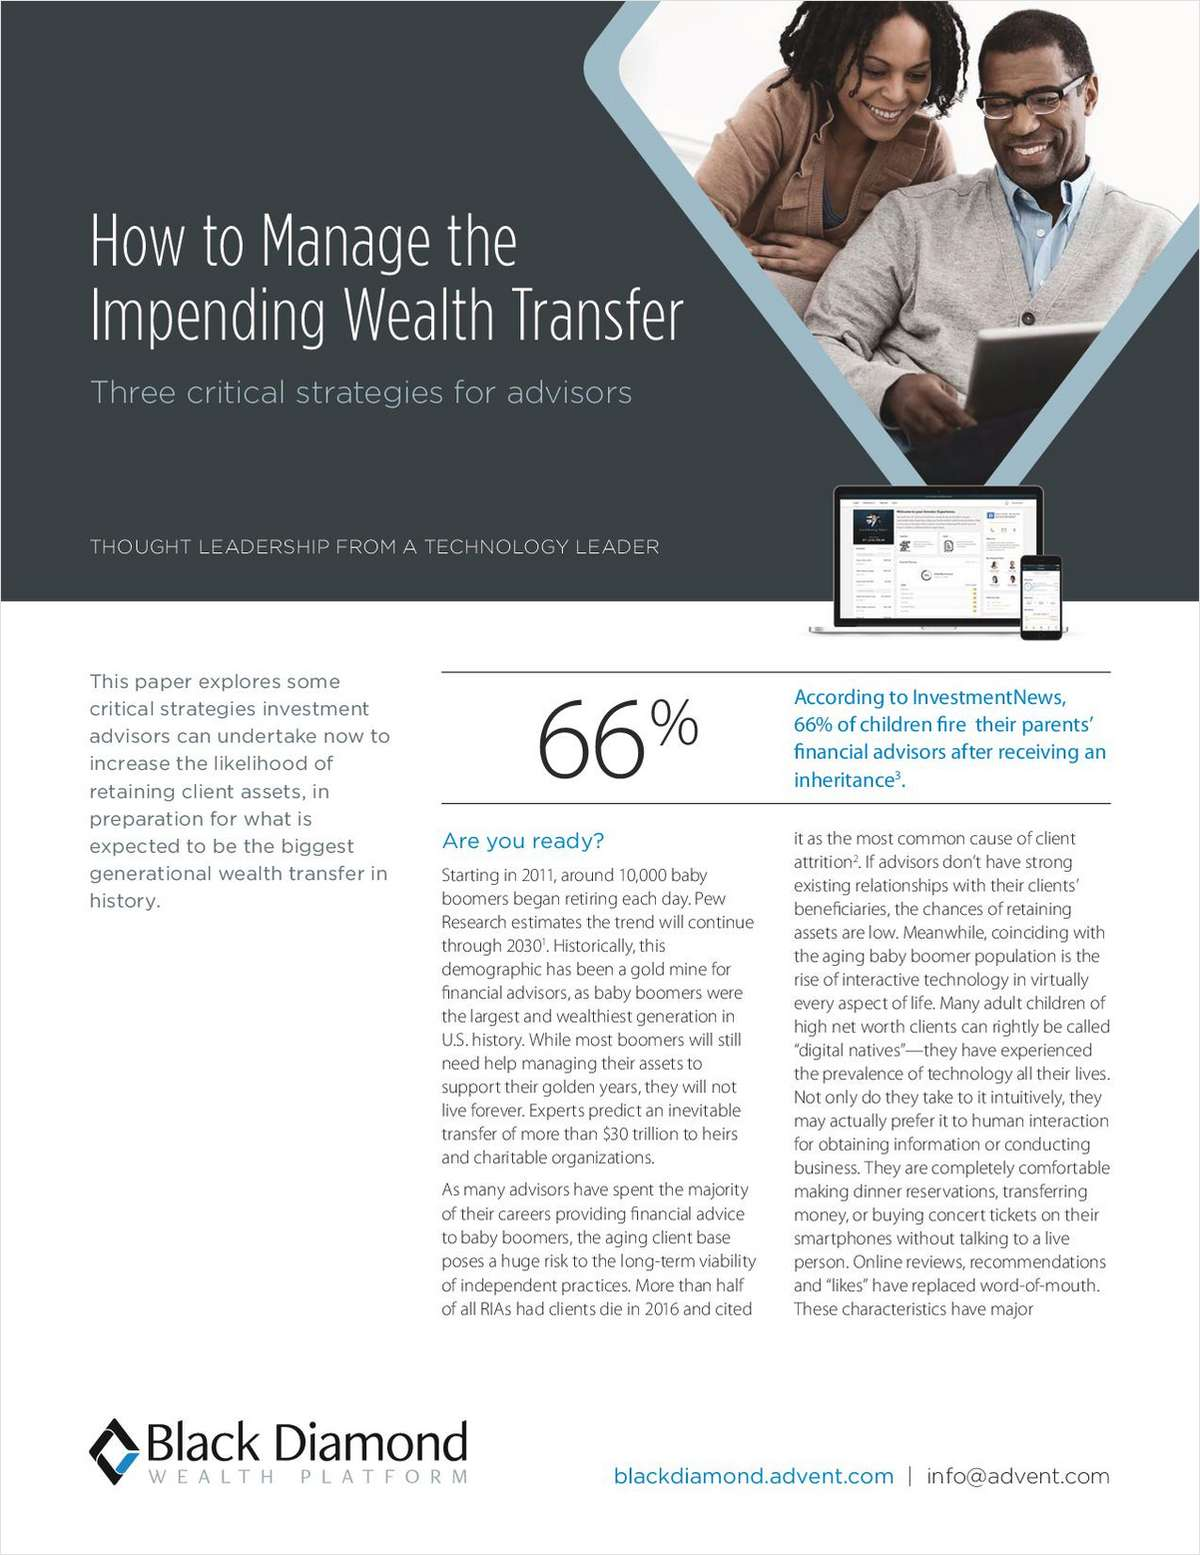 How to Manage the Impending Wealth Transfer: 3 Critical Strategies for Advisors